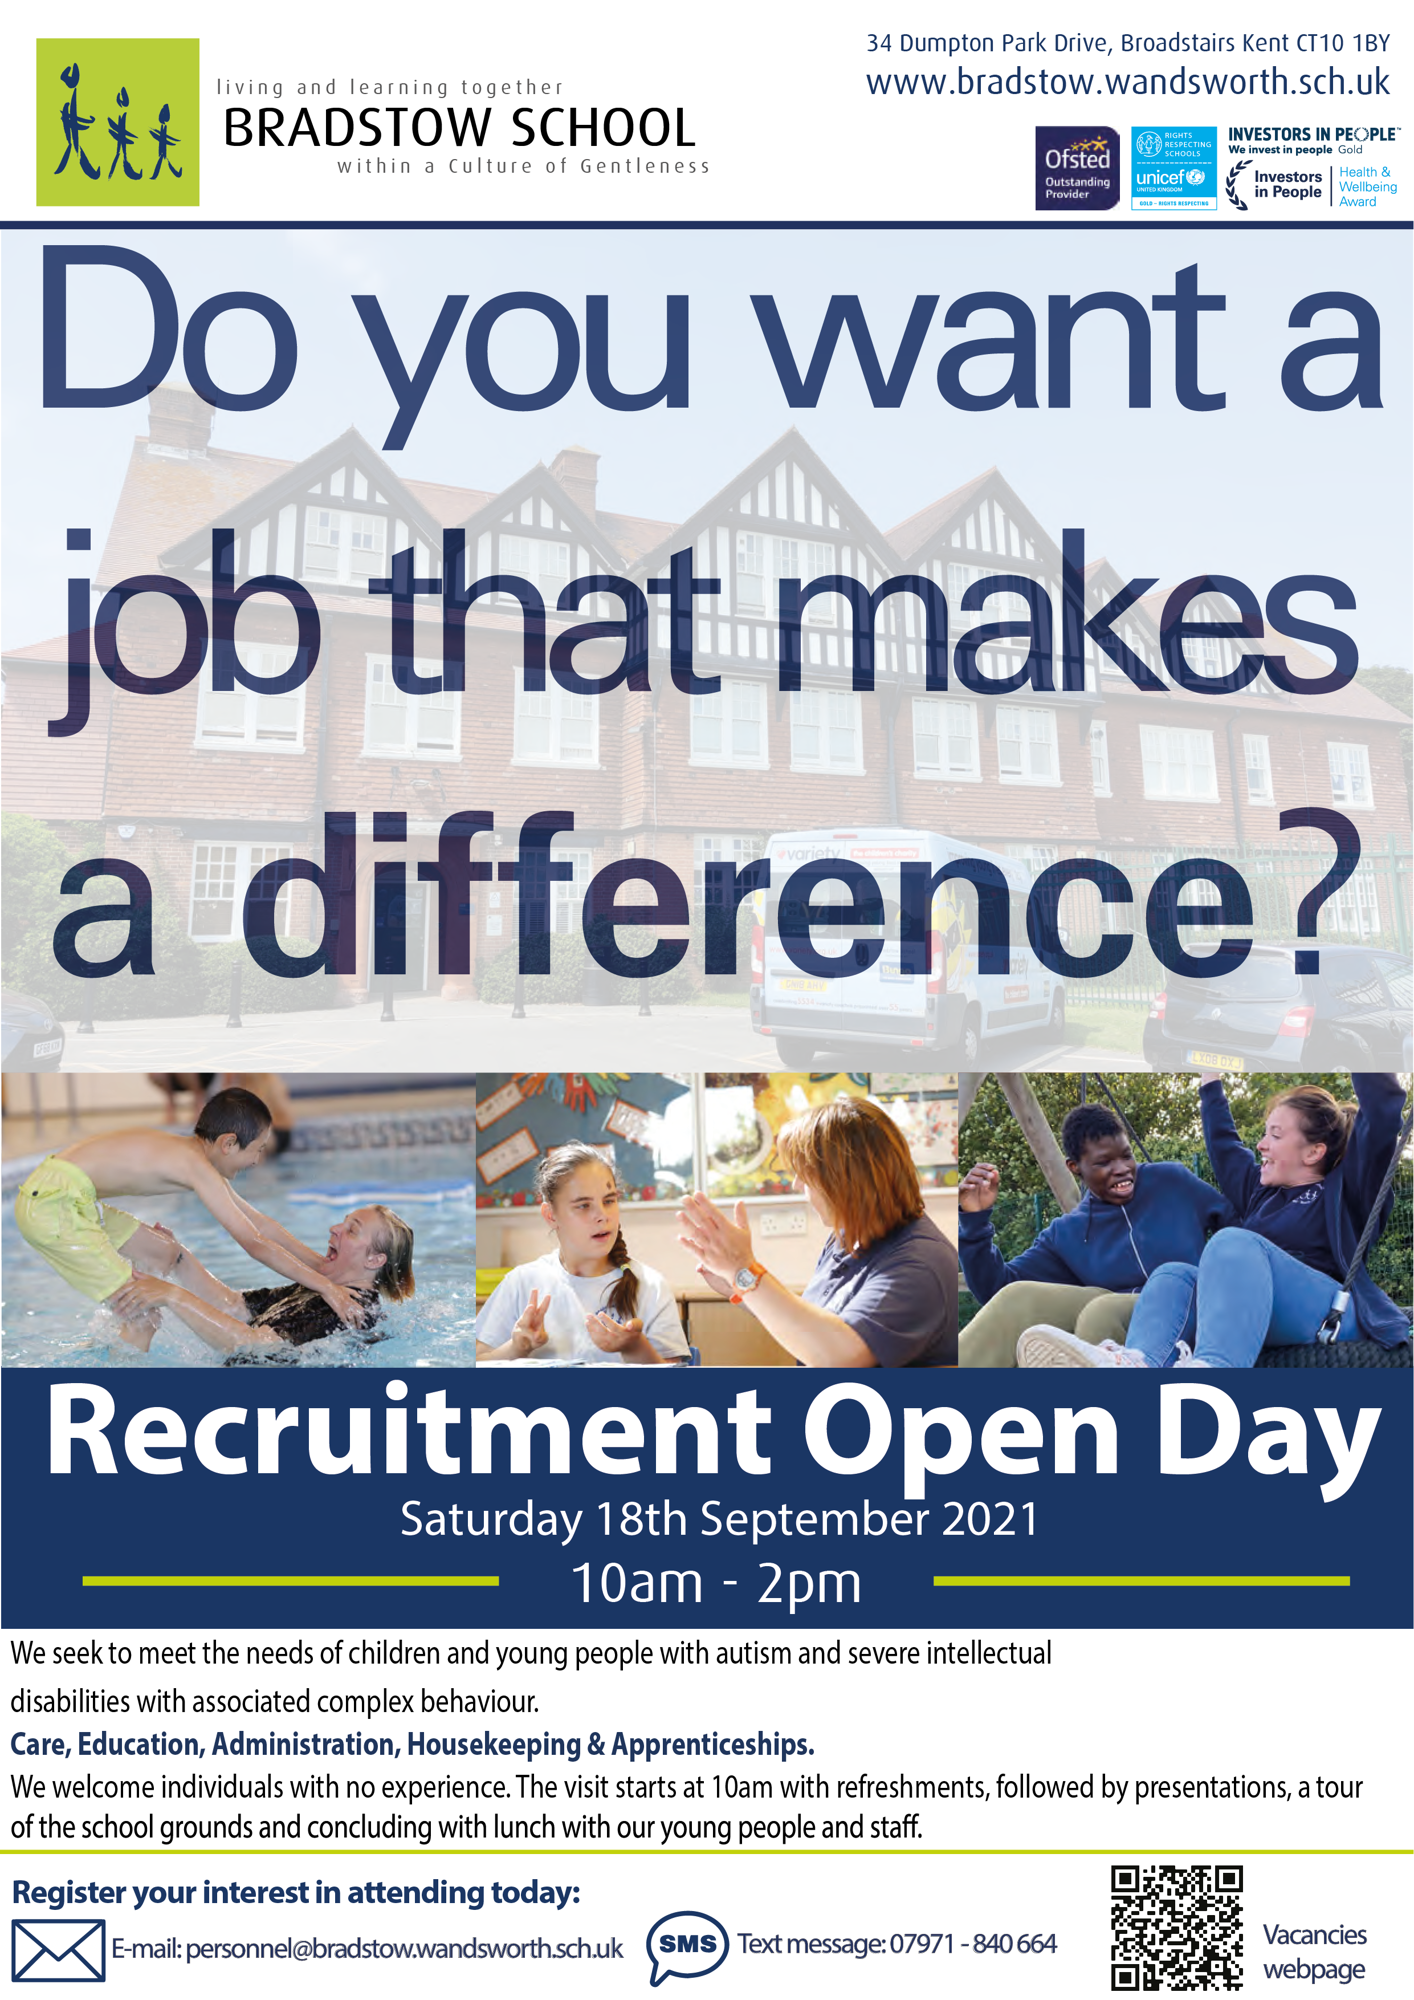 Recruitment Open Day updated18Sept2021v4 20July2021 reduced size